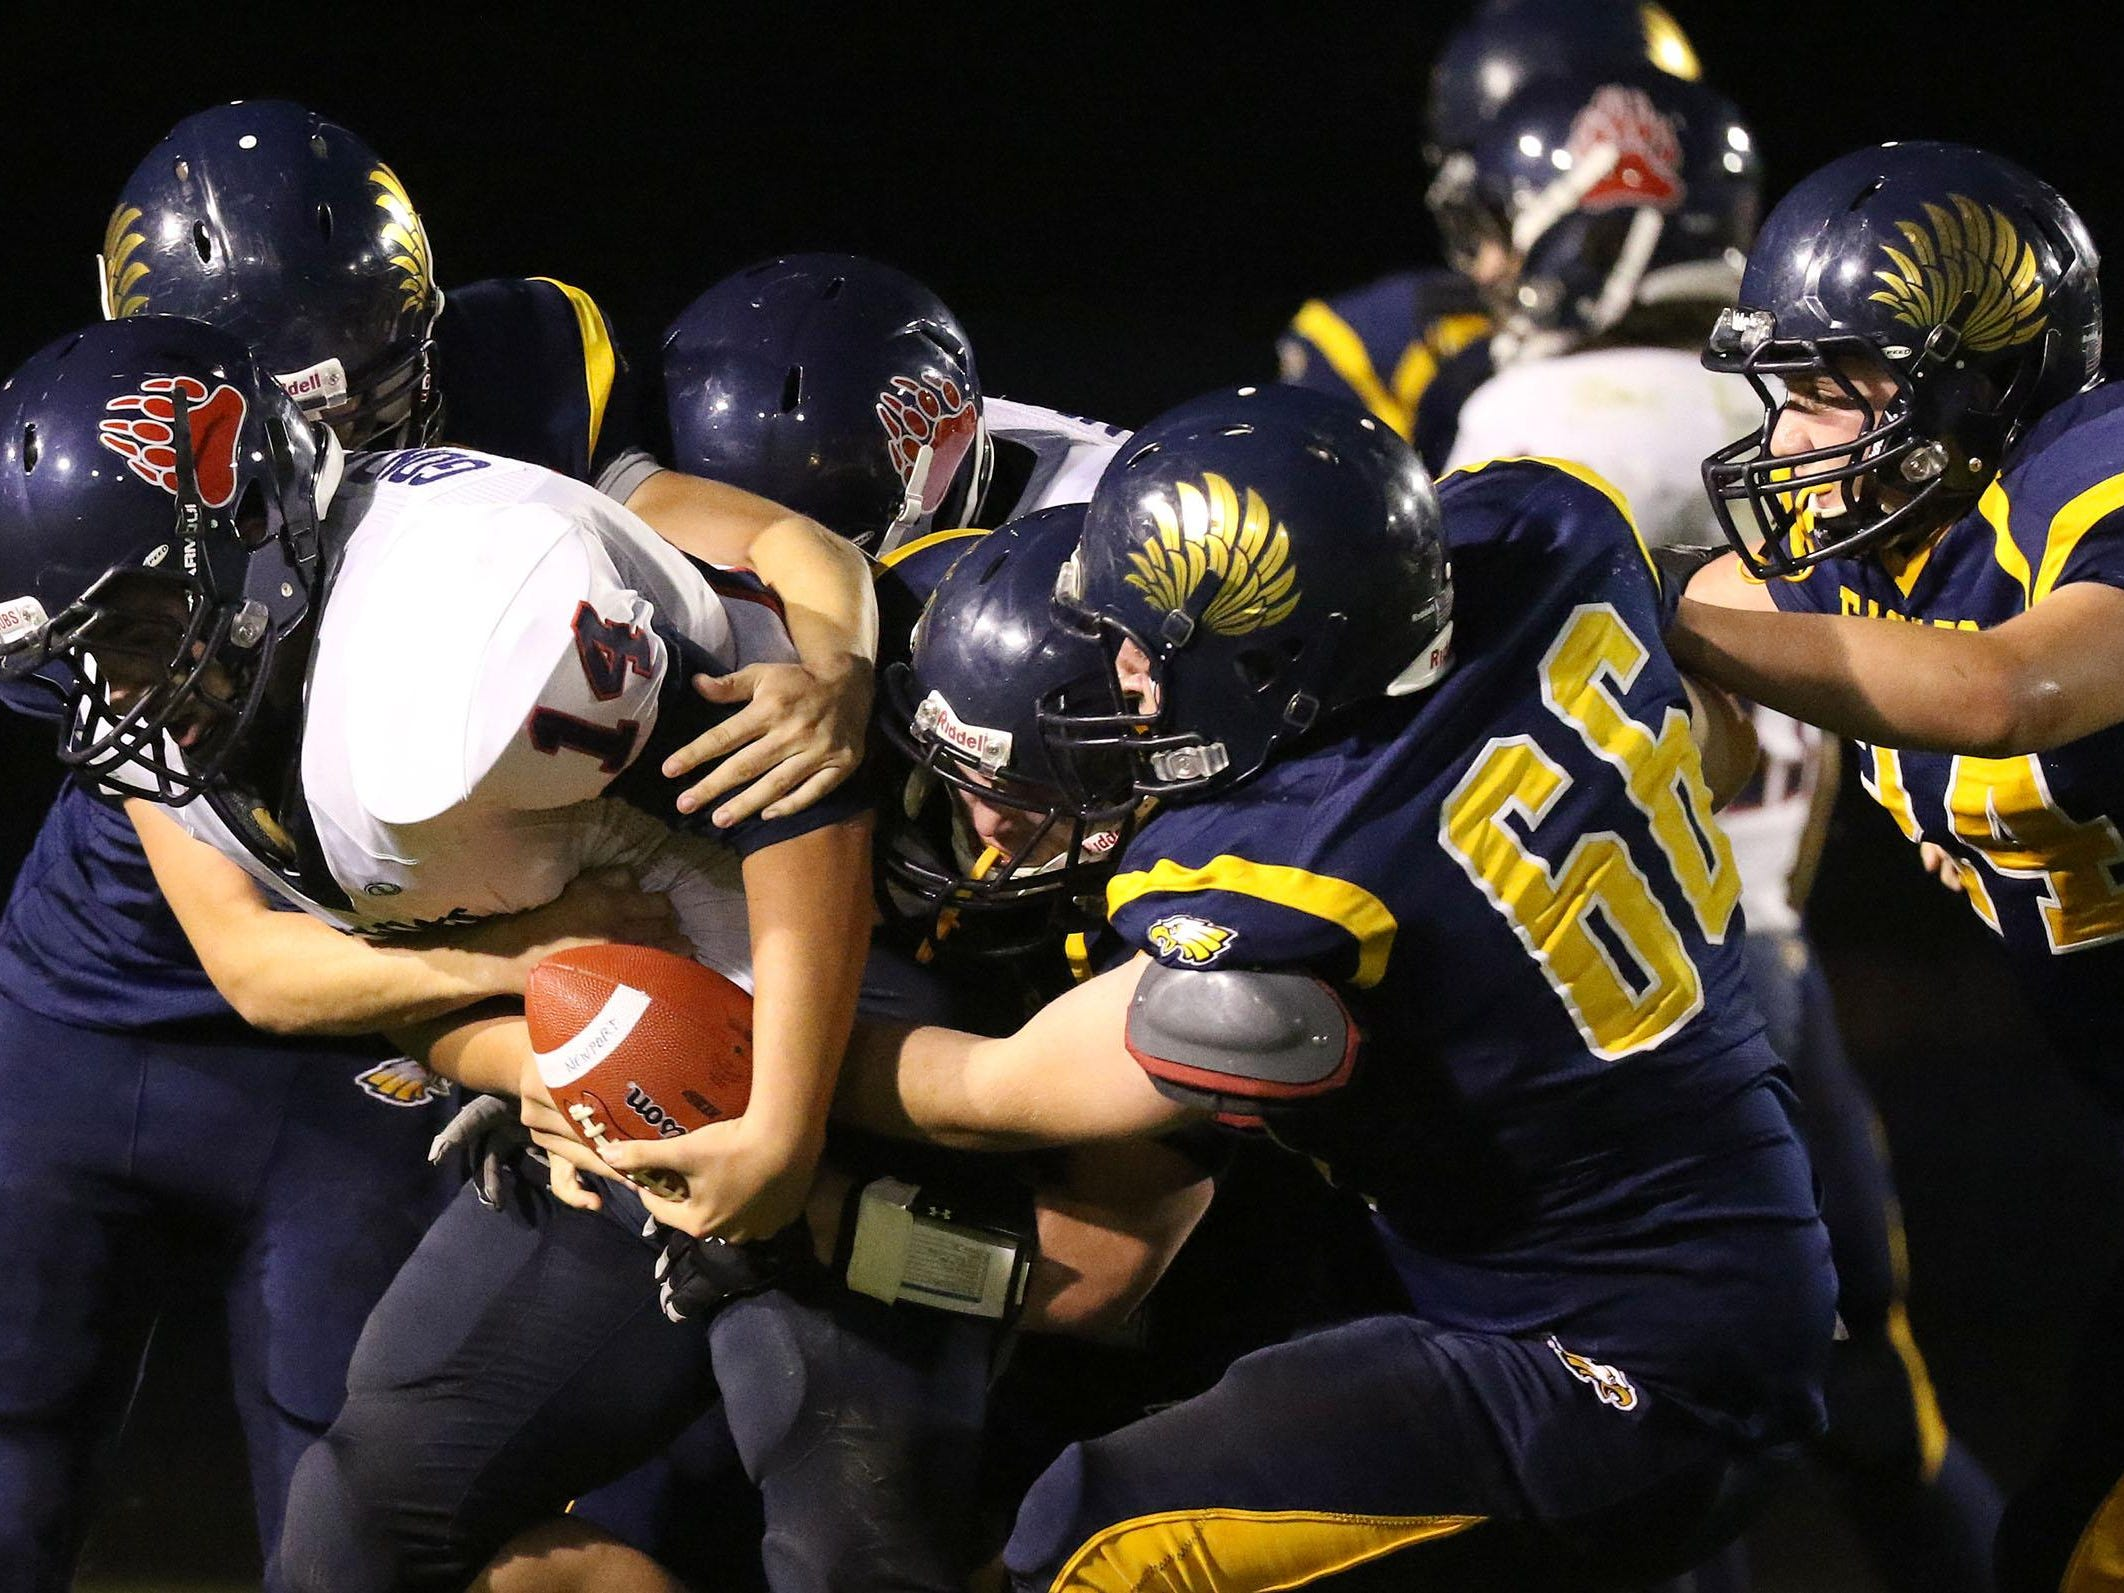 Newport's Austin Gonzales (14) is brought down by Stayton defenders during their game on Friday, Sept. 25, 2015, in Stayton, Ore.